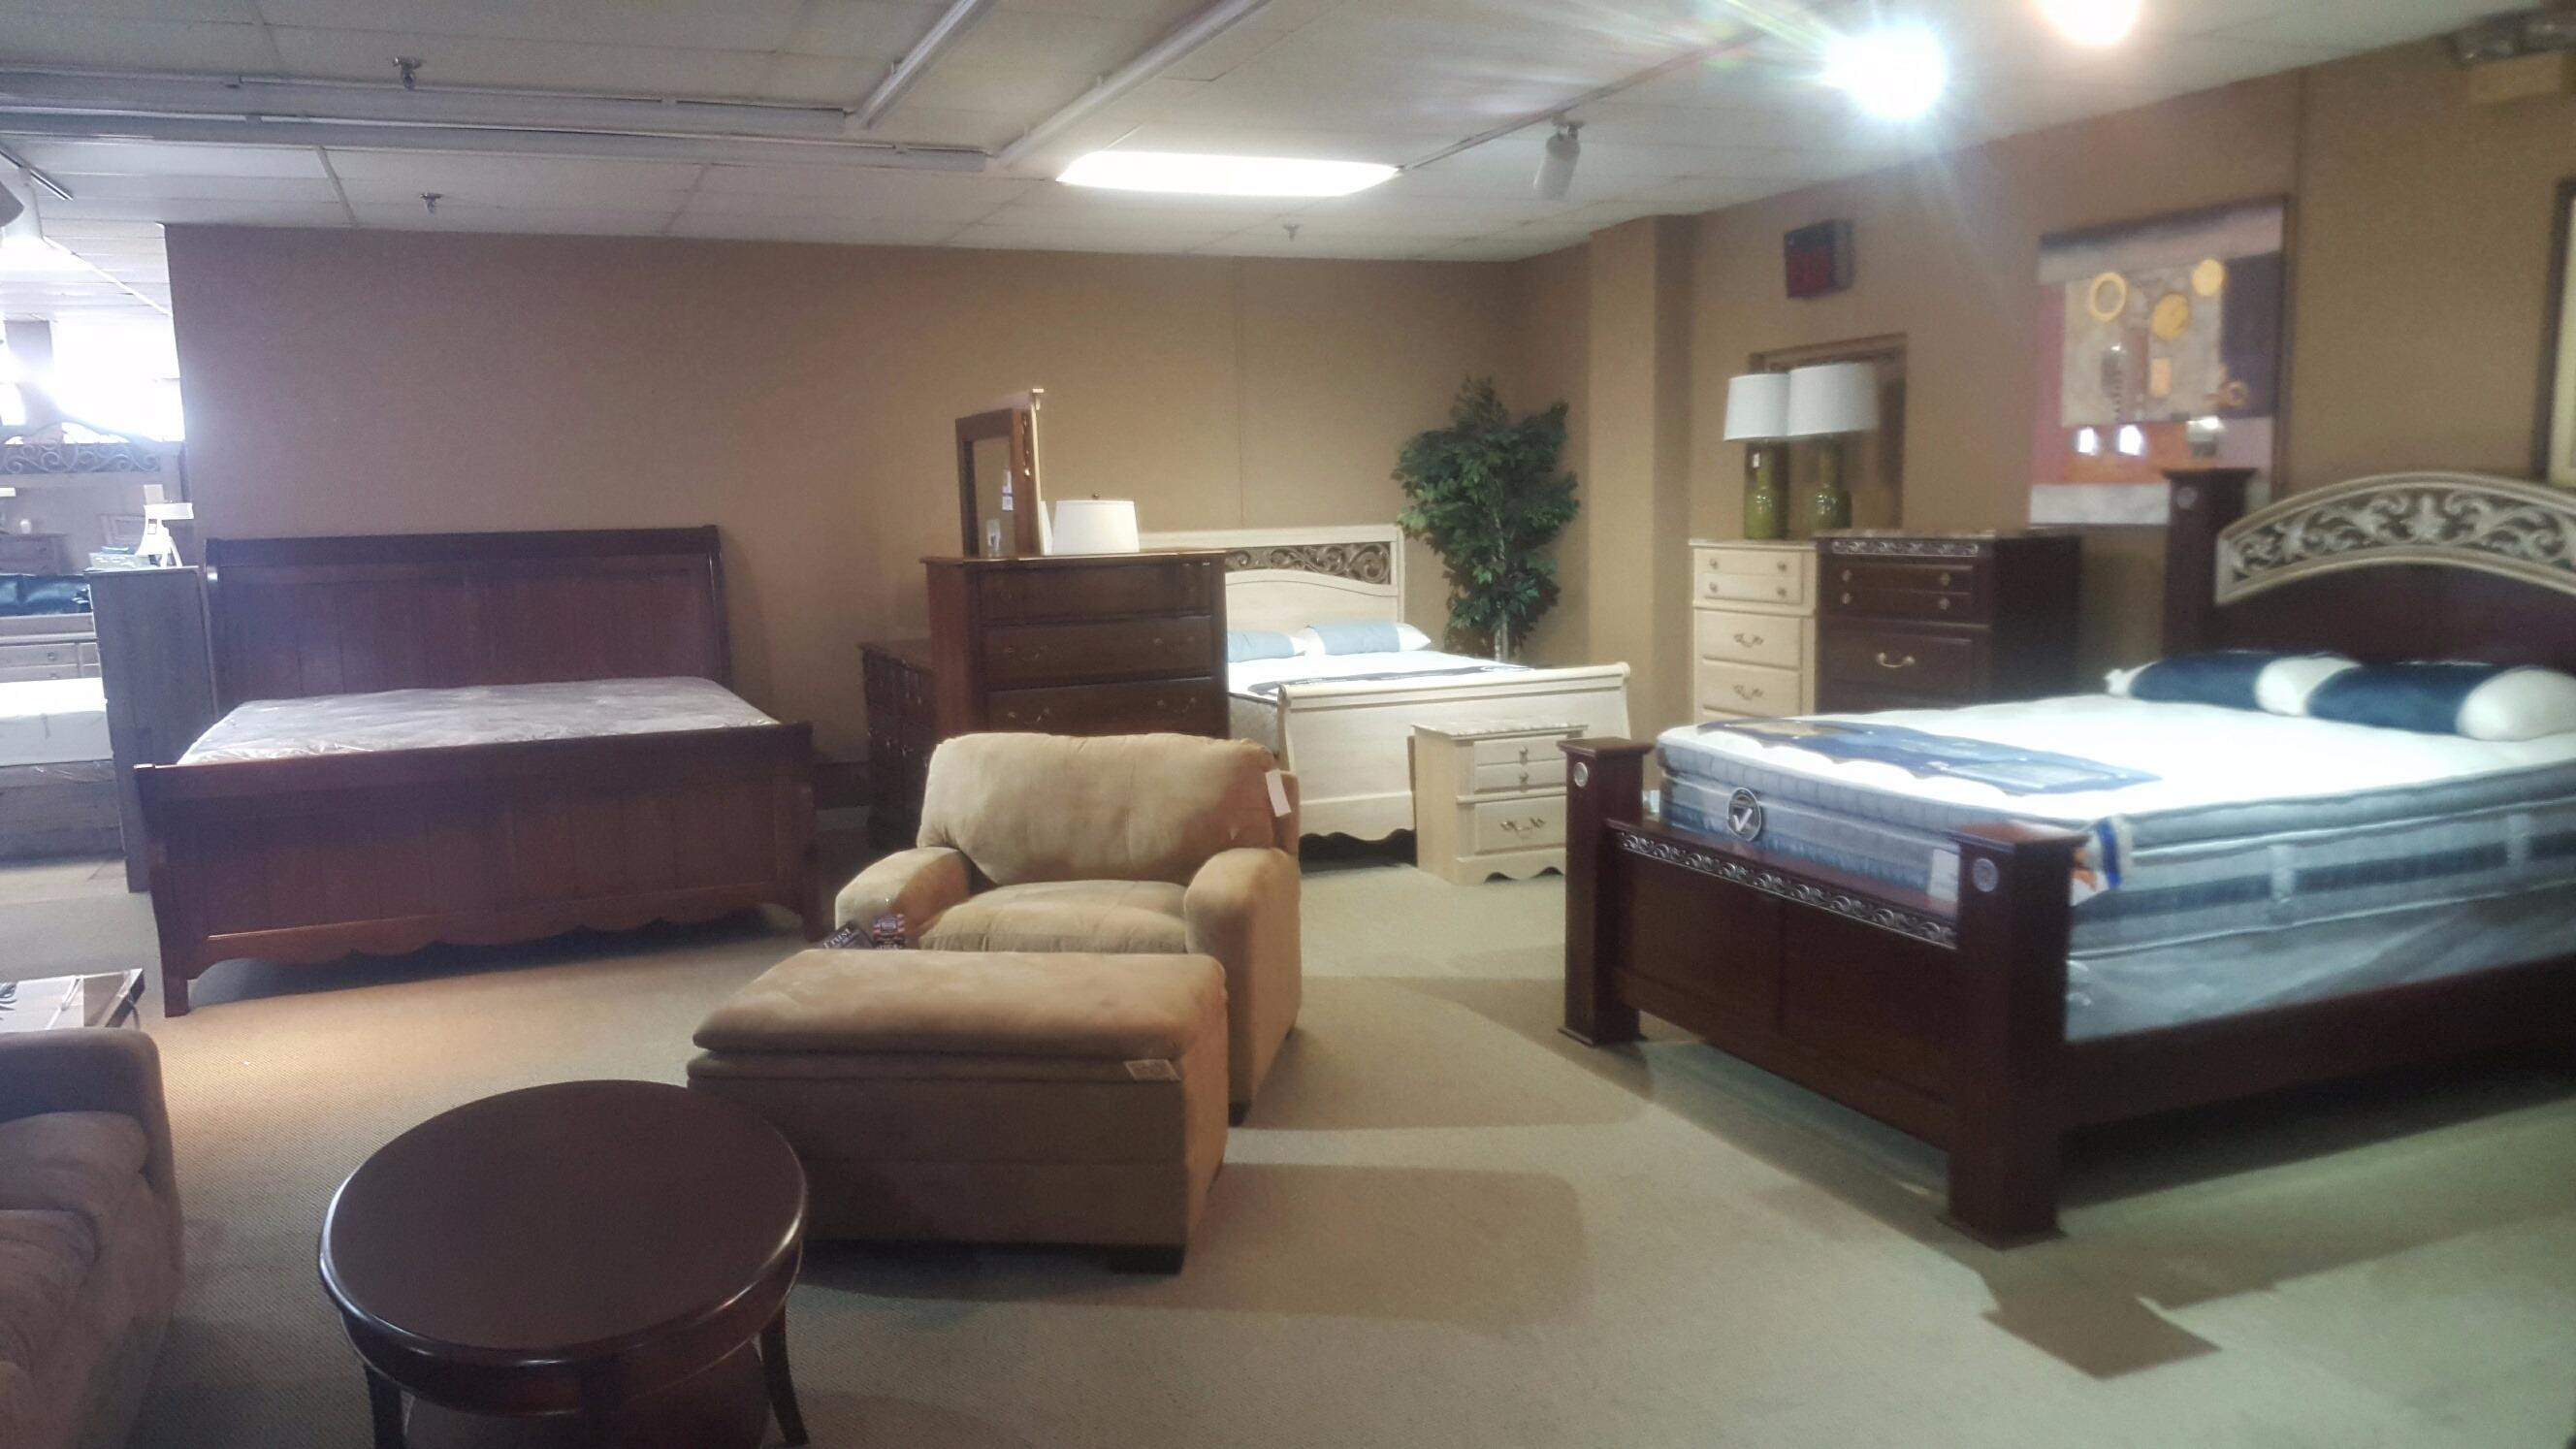 Schloemer Furniture And Sleep Center In Florence Ky Furniture Stores Yellow Pages Directory Inc